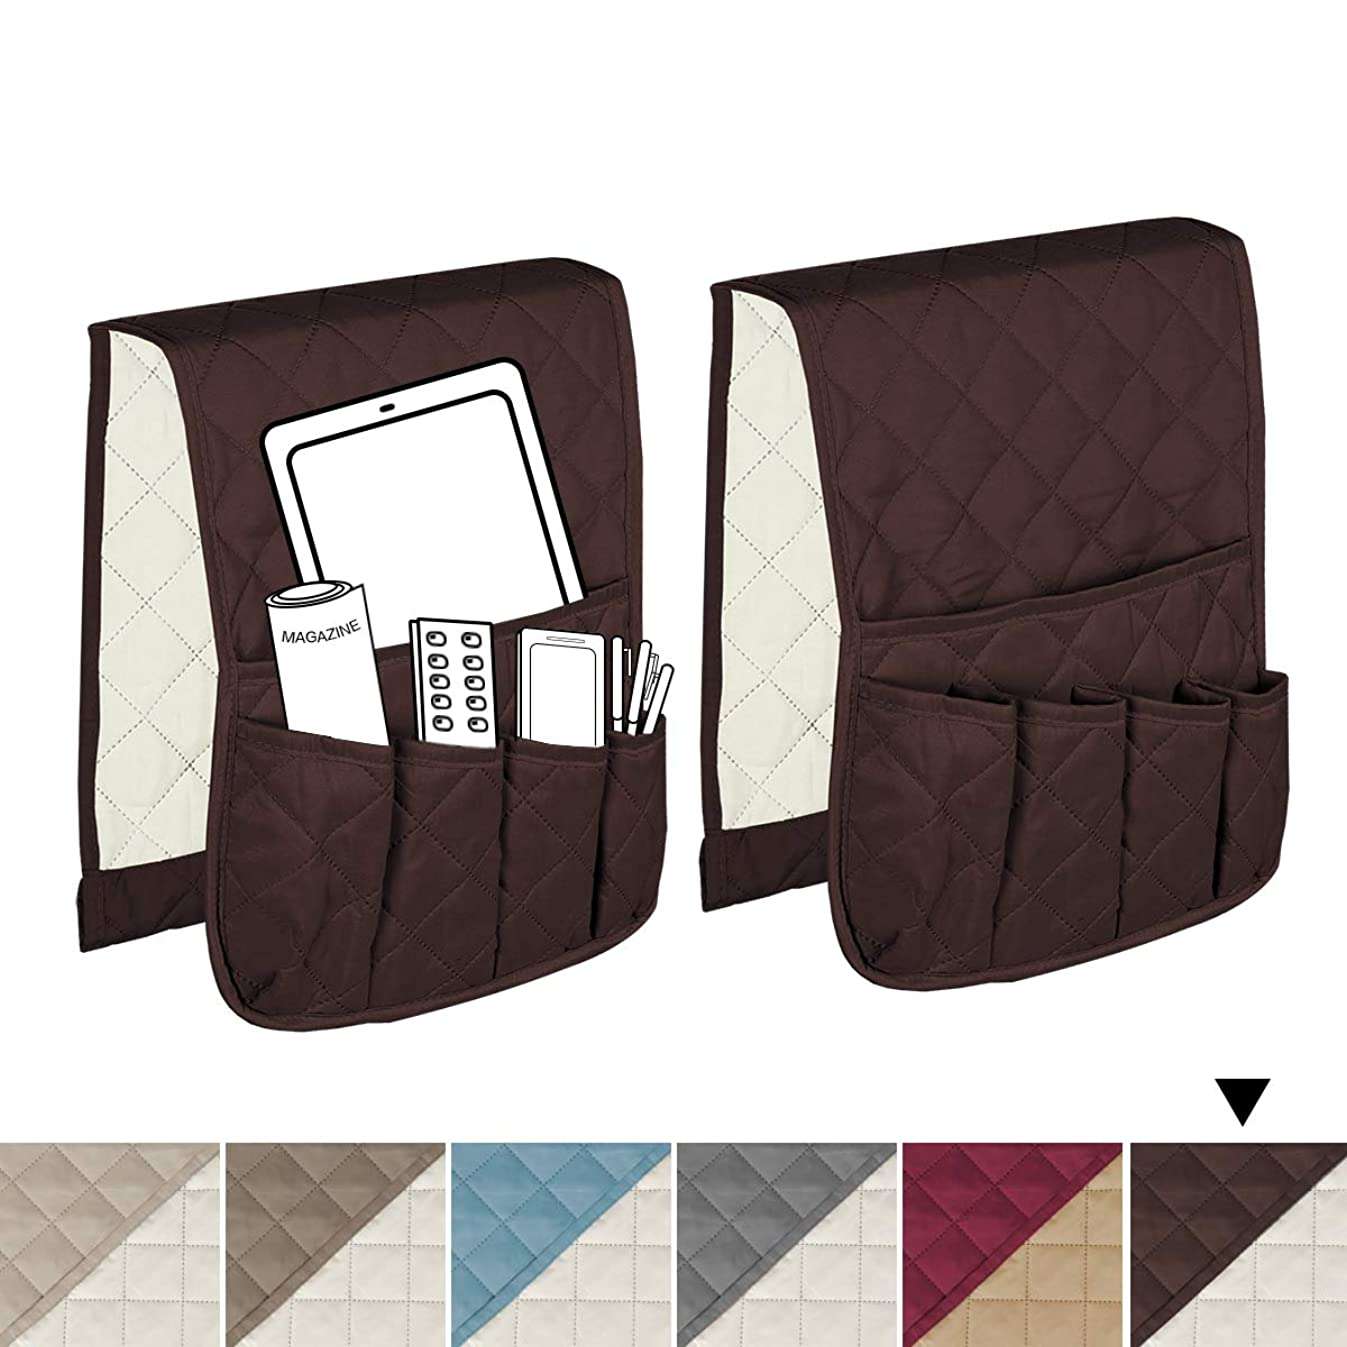 H.VERSAILTEX 5 Pockets Space Saver Organizer with Anti-Sliding Pipe, Remote Control Holder, Magazine Rack, Draped Over Sofa, Couch, Recliner Armrest (Brown/Beige) - 2 Packs